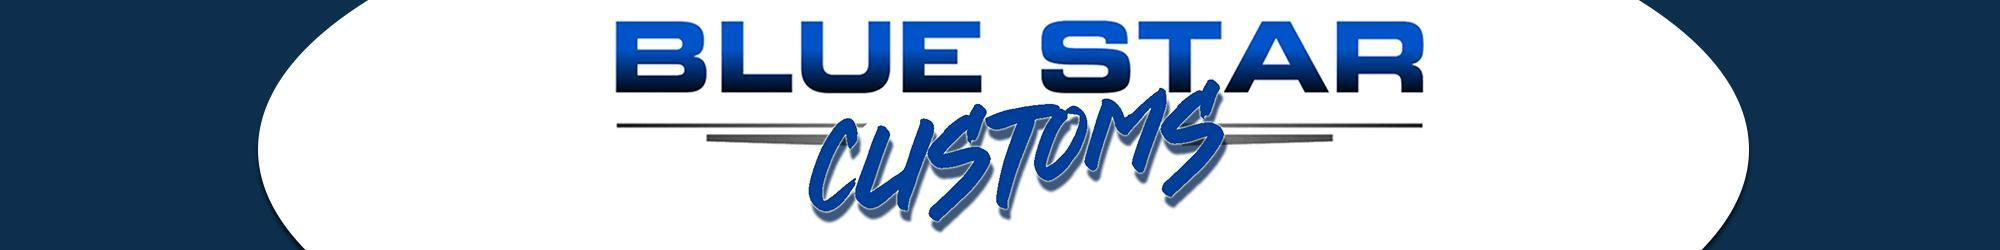 Blue Star Customs